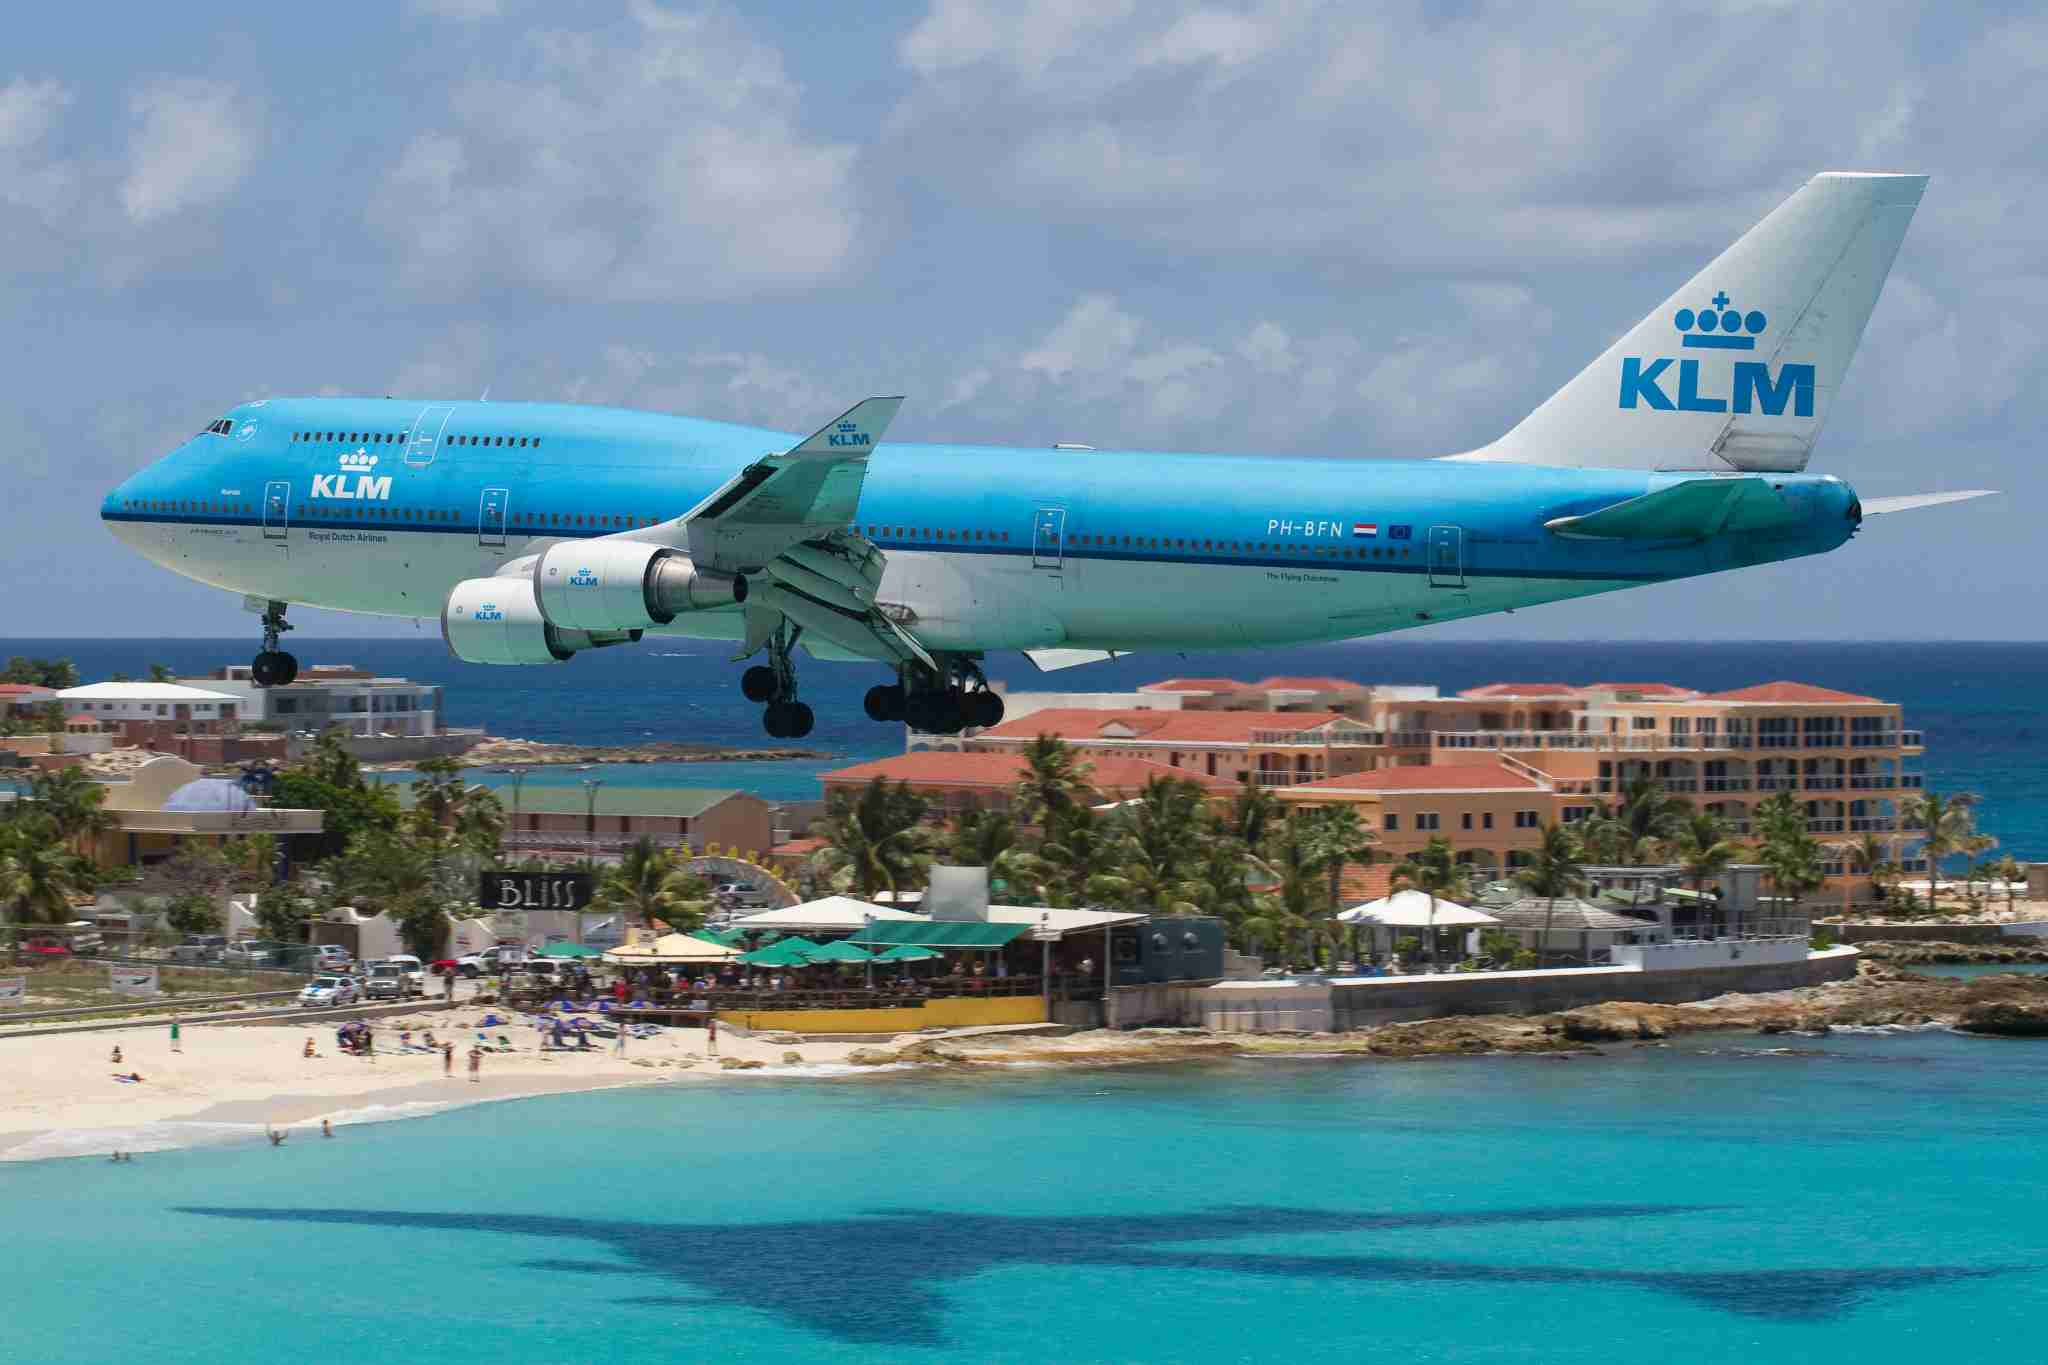 [UNVERIFIED CONTENT] A KLM 747 glides over Maho Beach in ST. Marrten